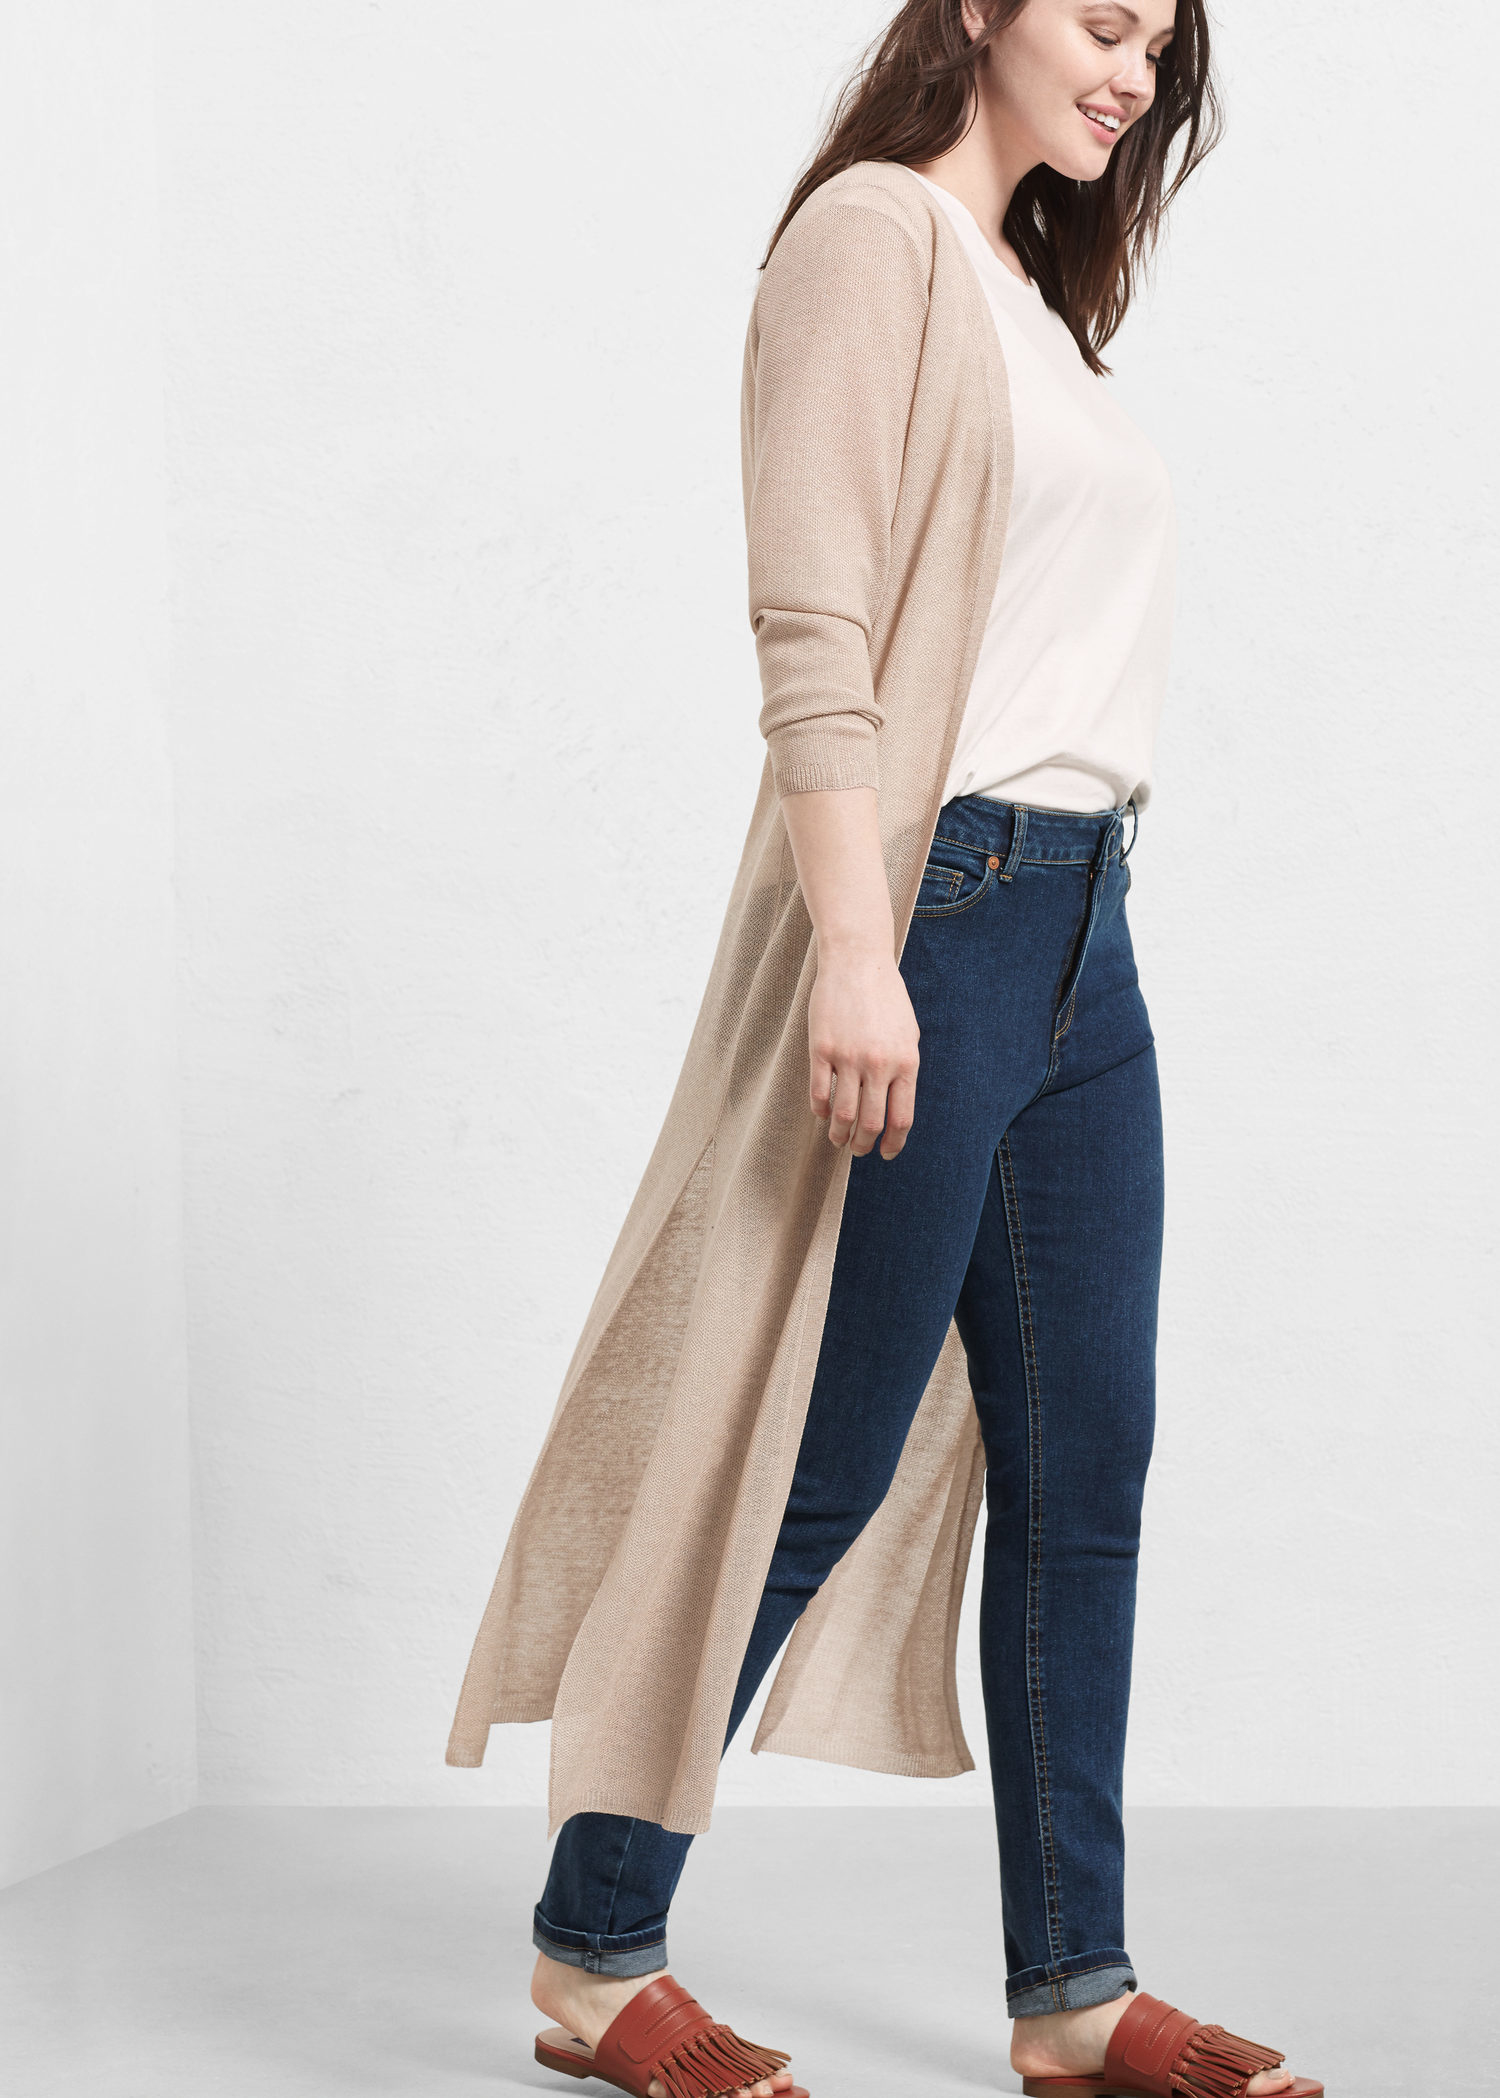 Violeta by mango Long Cardigan in Natural | Lyst